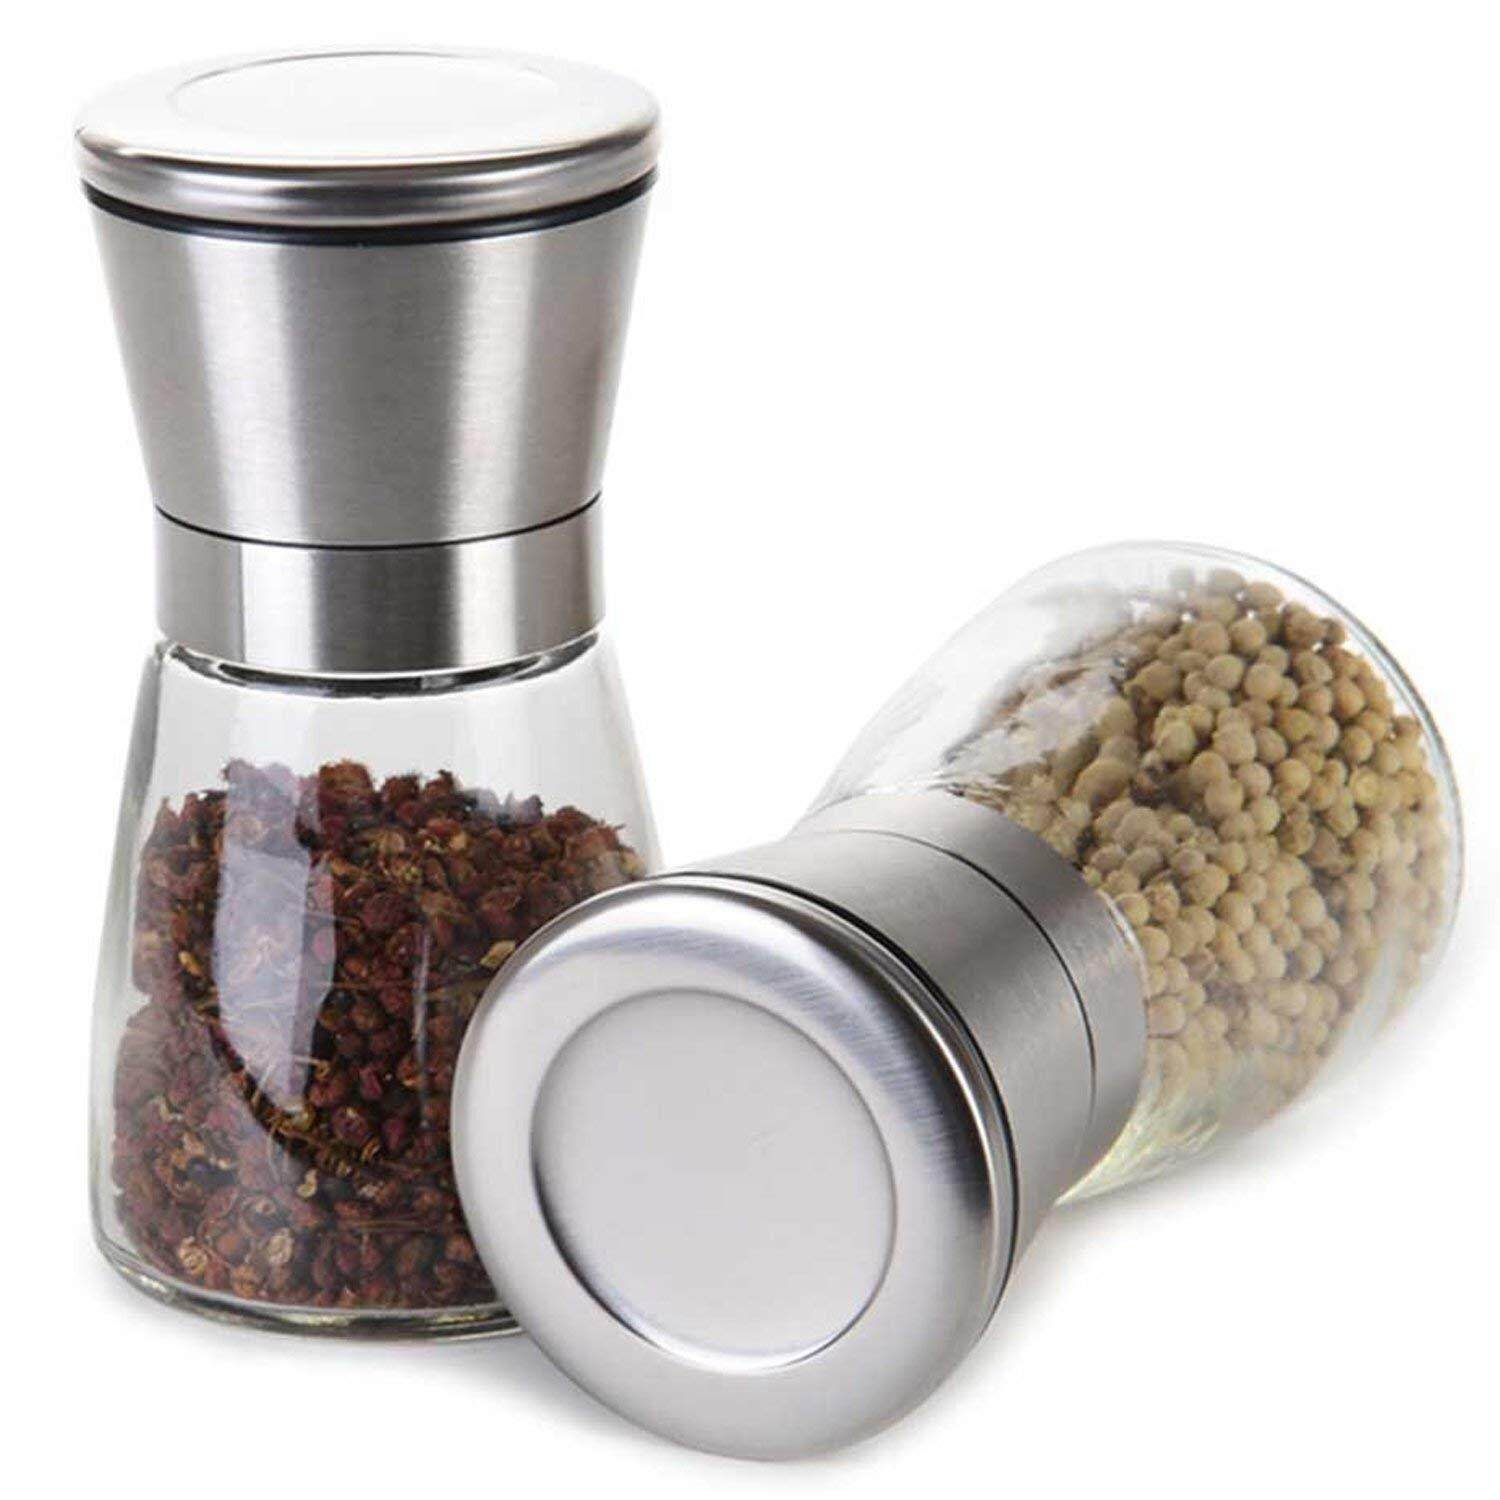 2-Pack Kitchen Premium Brushed Stainless Steel Salt & Pepper Grinder With Adjustable Coarseness By Skinartwork.